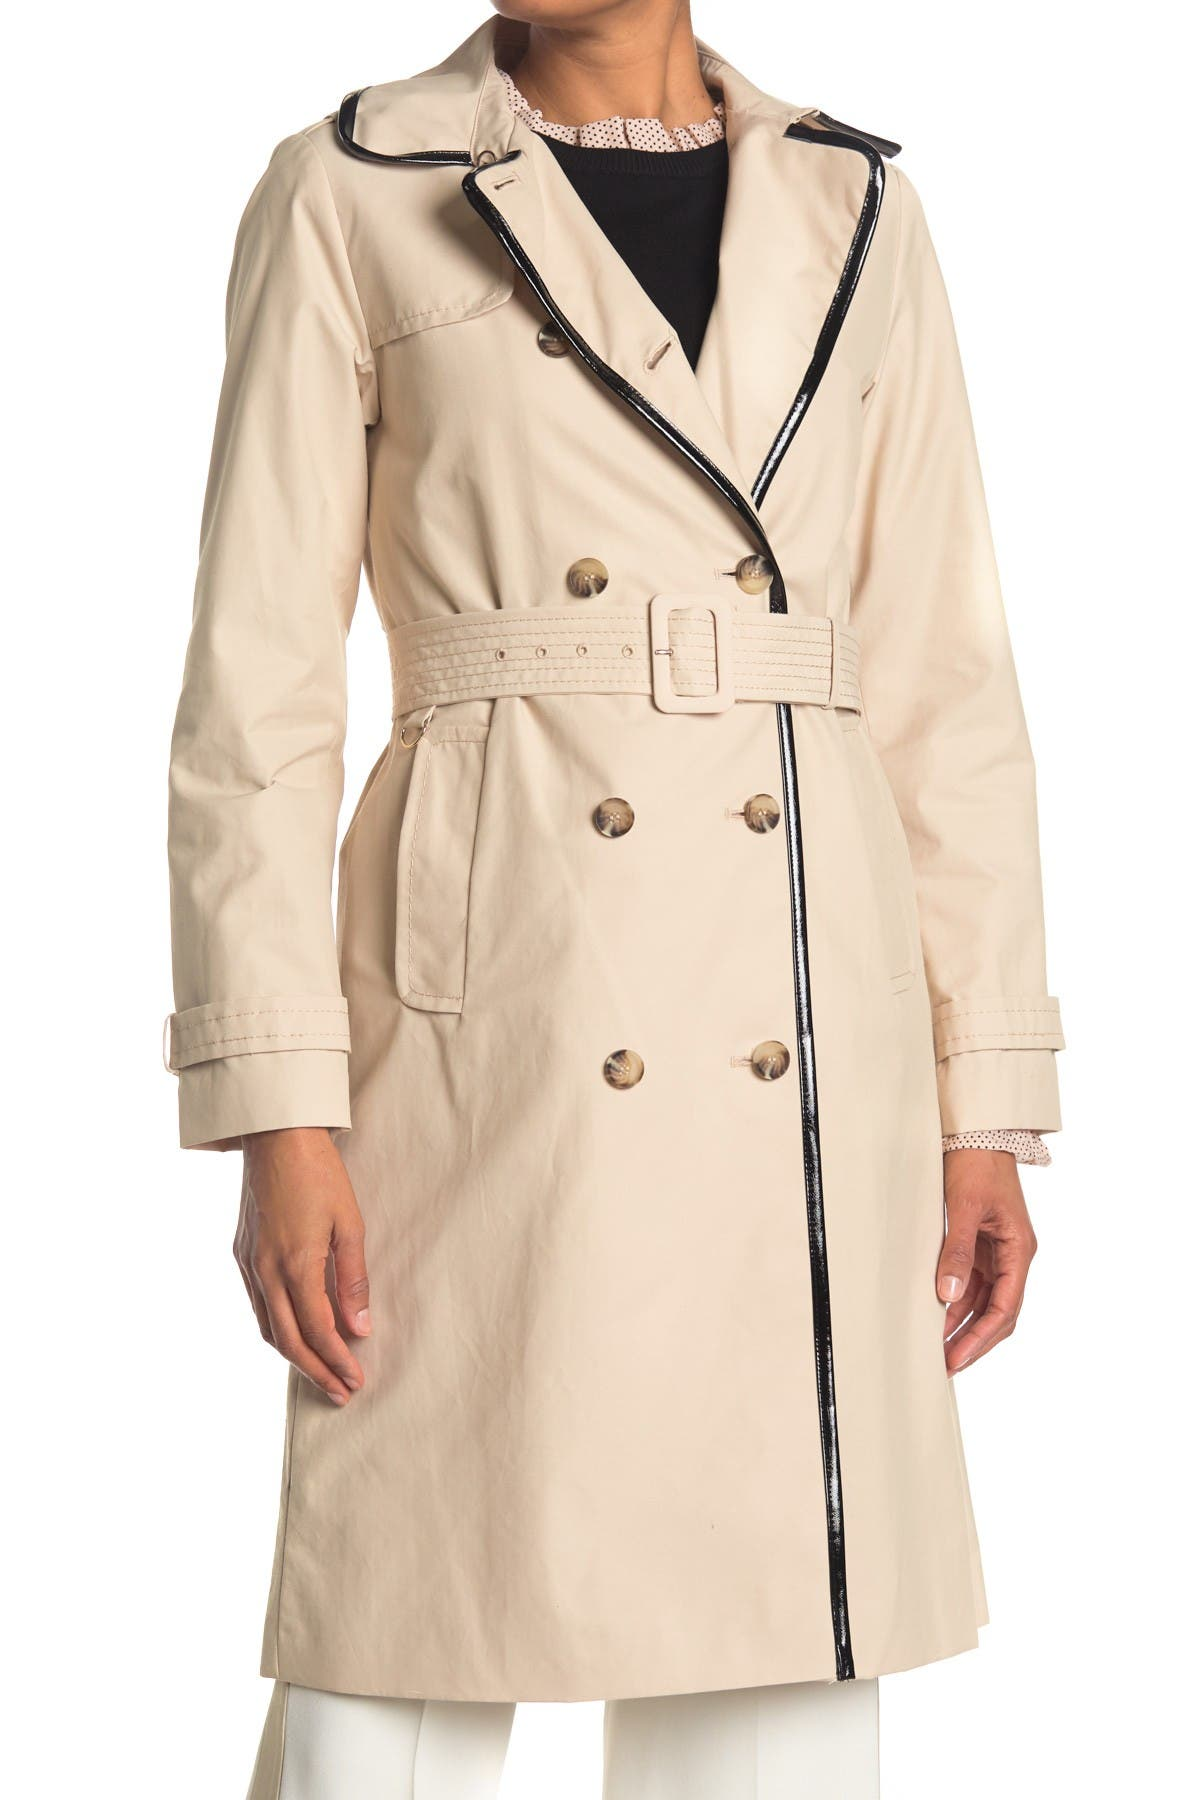 Image of kate spade new york double breasted belted trench coat